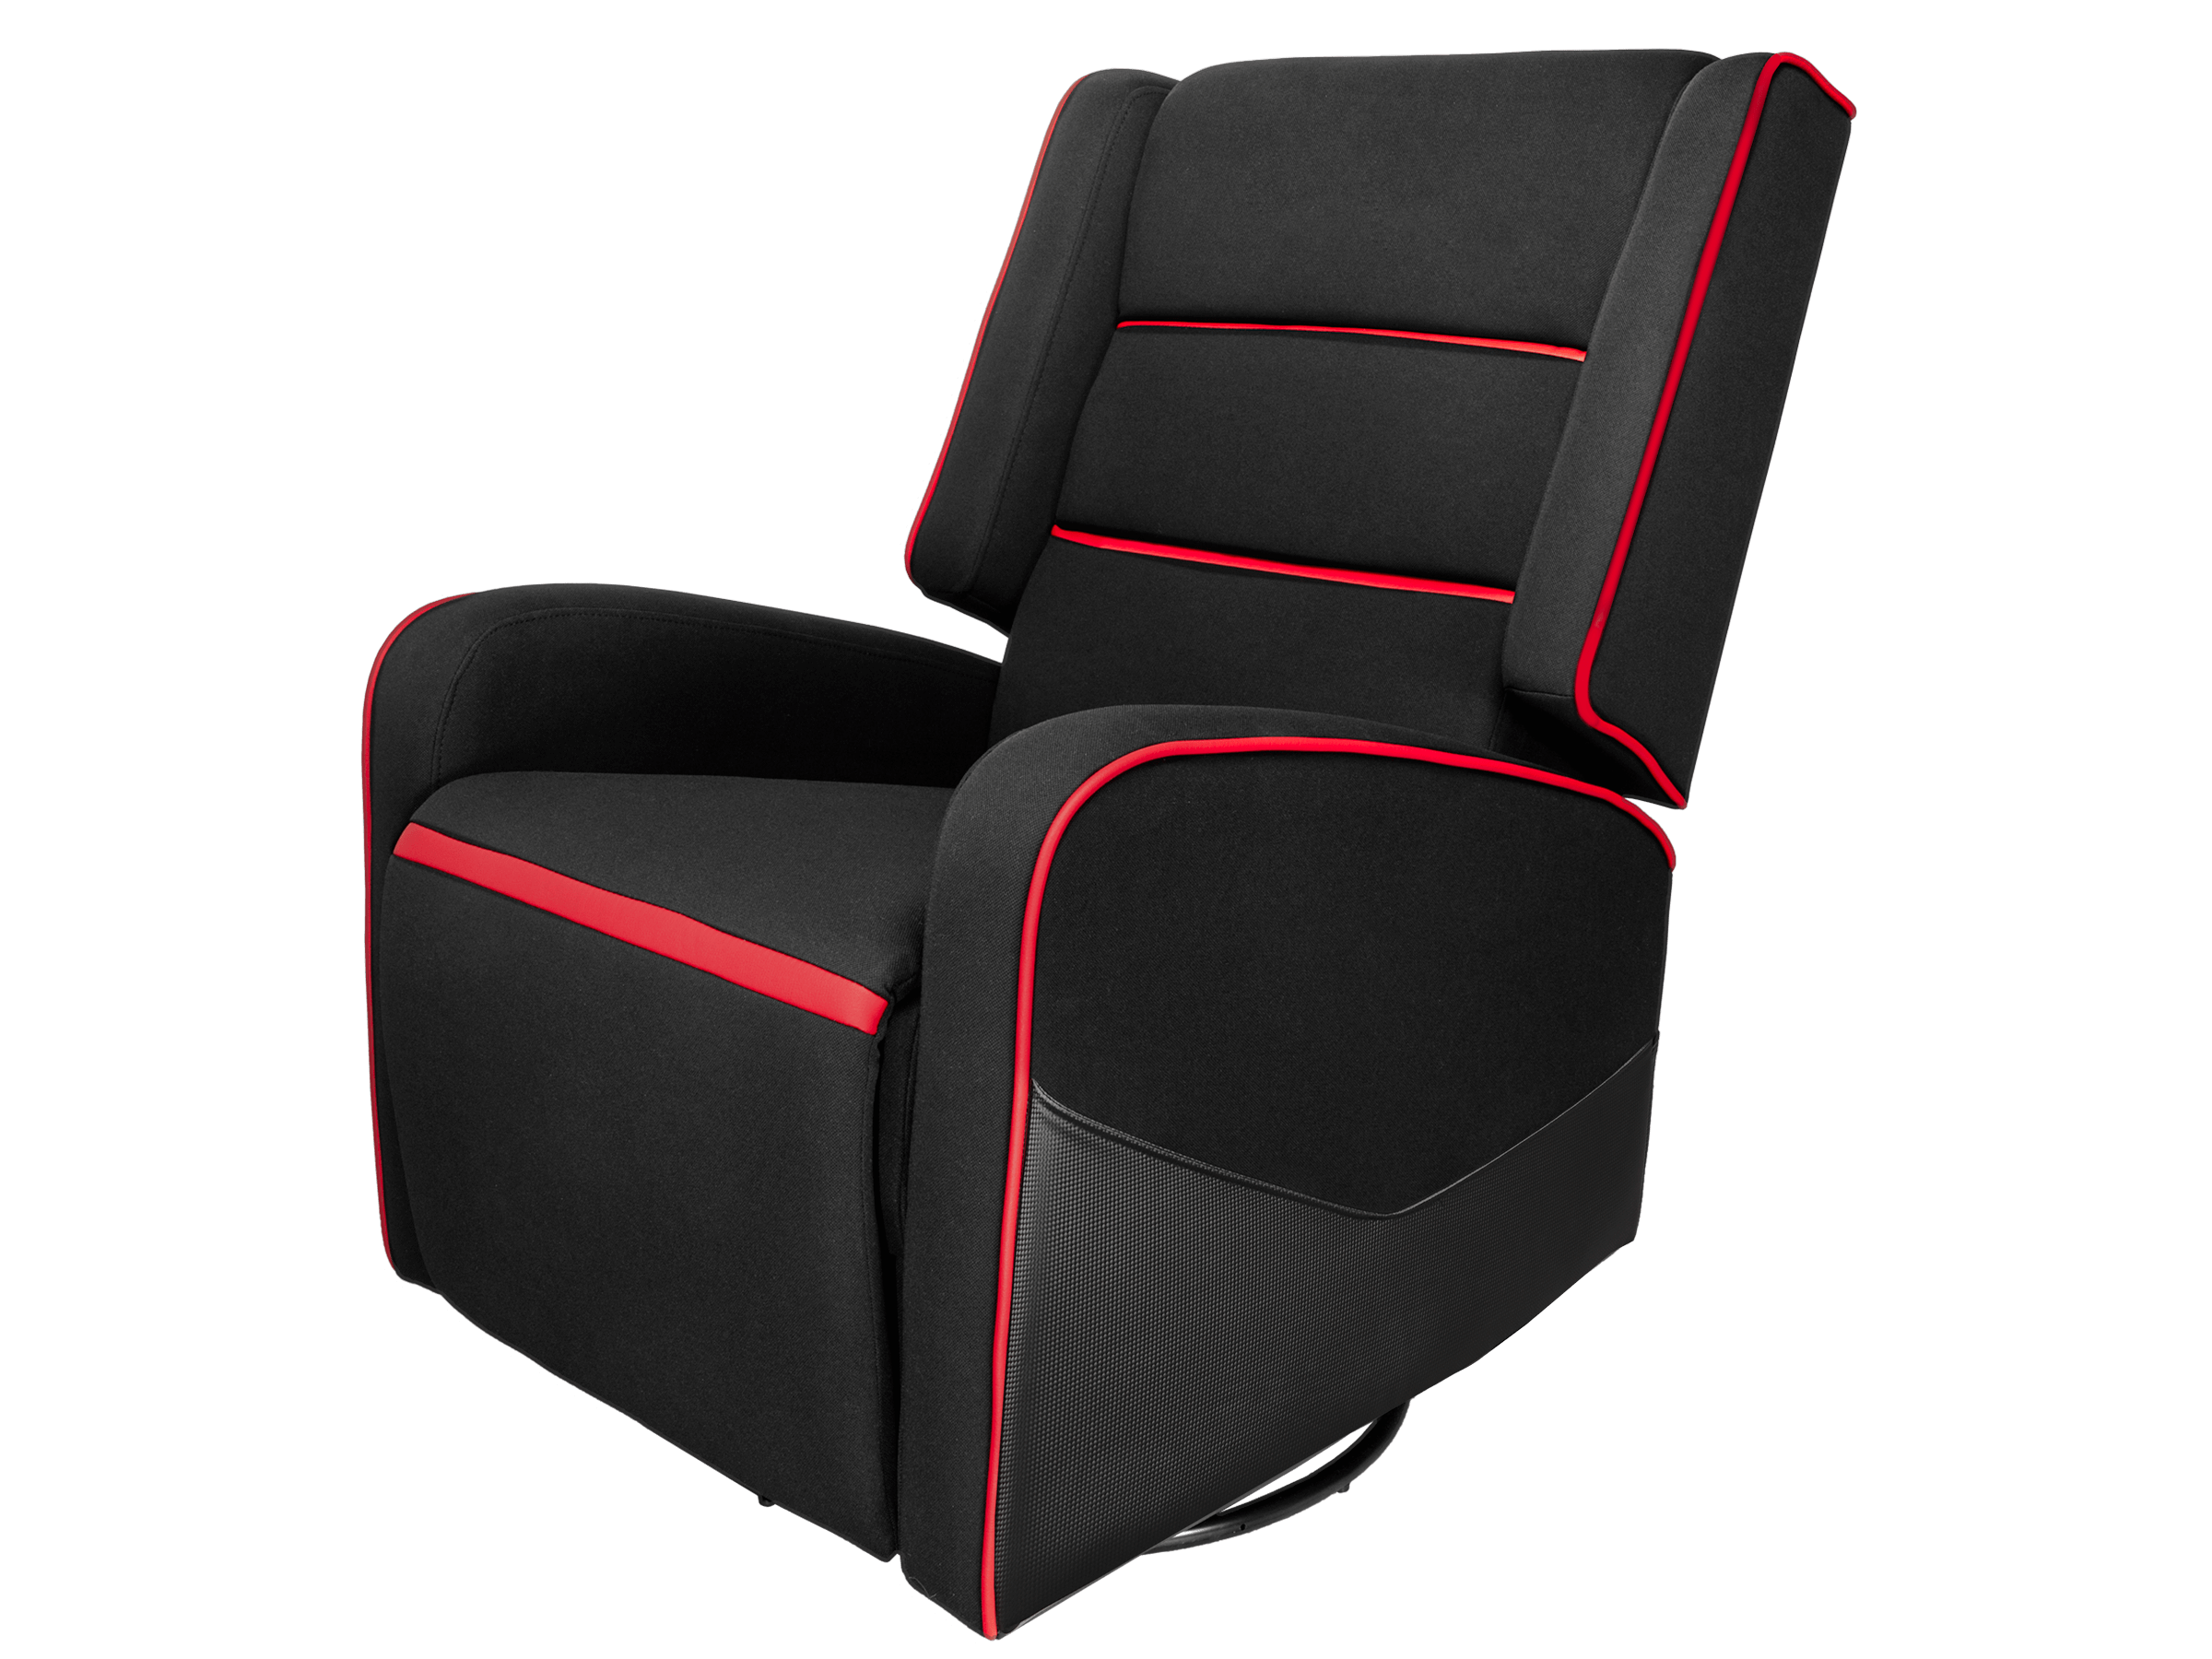 Astonishing Svive Hoba Gaming Chair Lamtechconsult Wood Chair Design Ideas Lamtechconsultcom